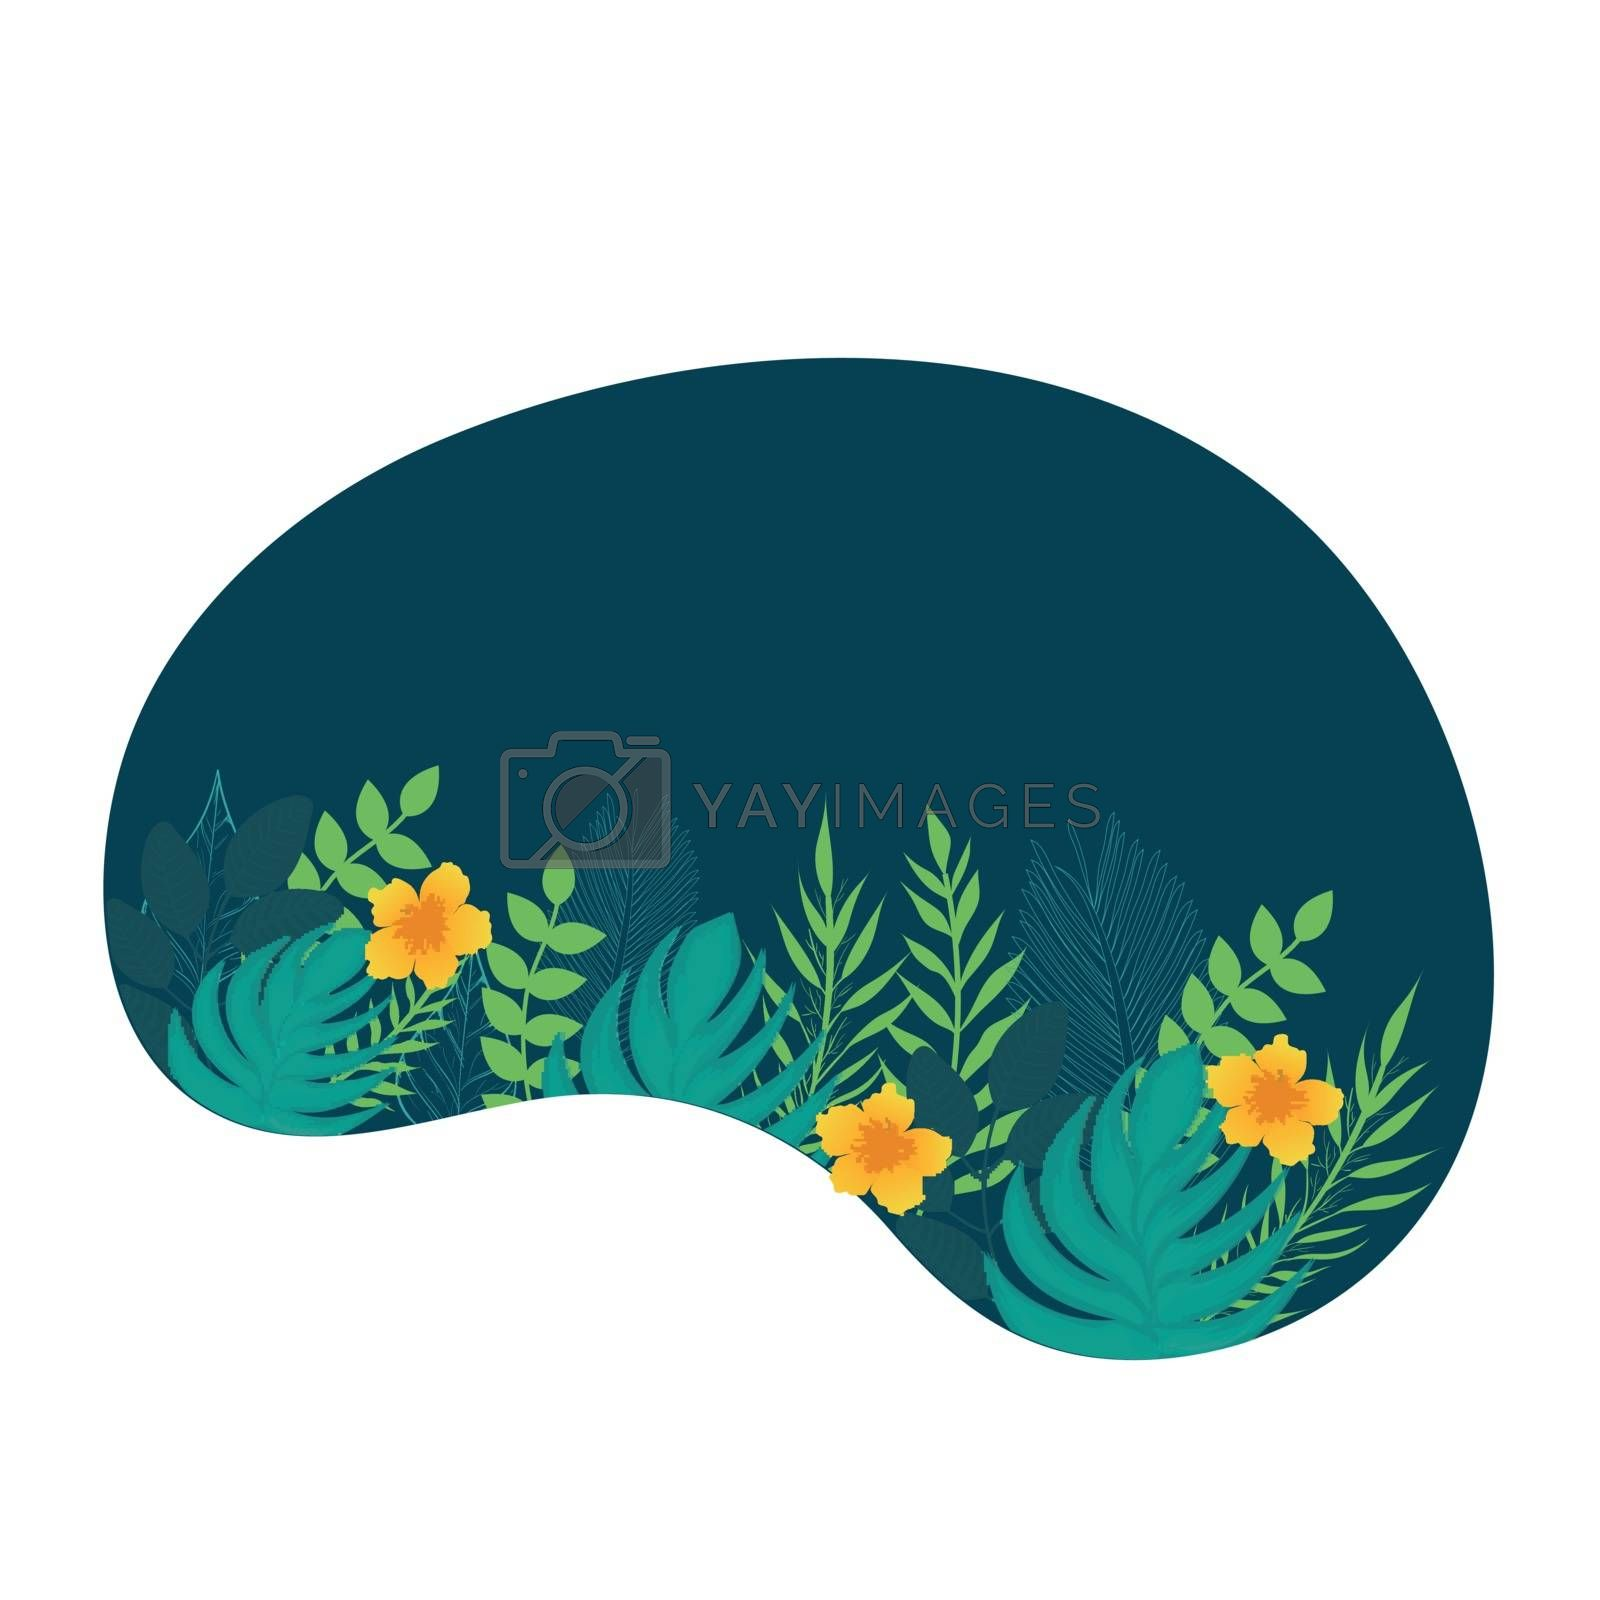 Royalty free image of Flat style illustration of leaves and flowers on white abstract  by aispl